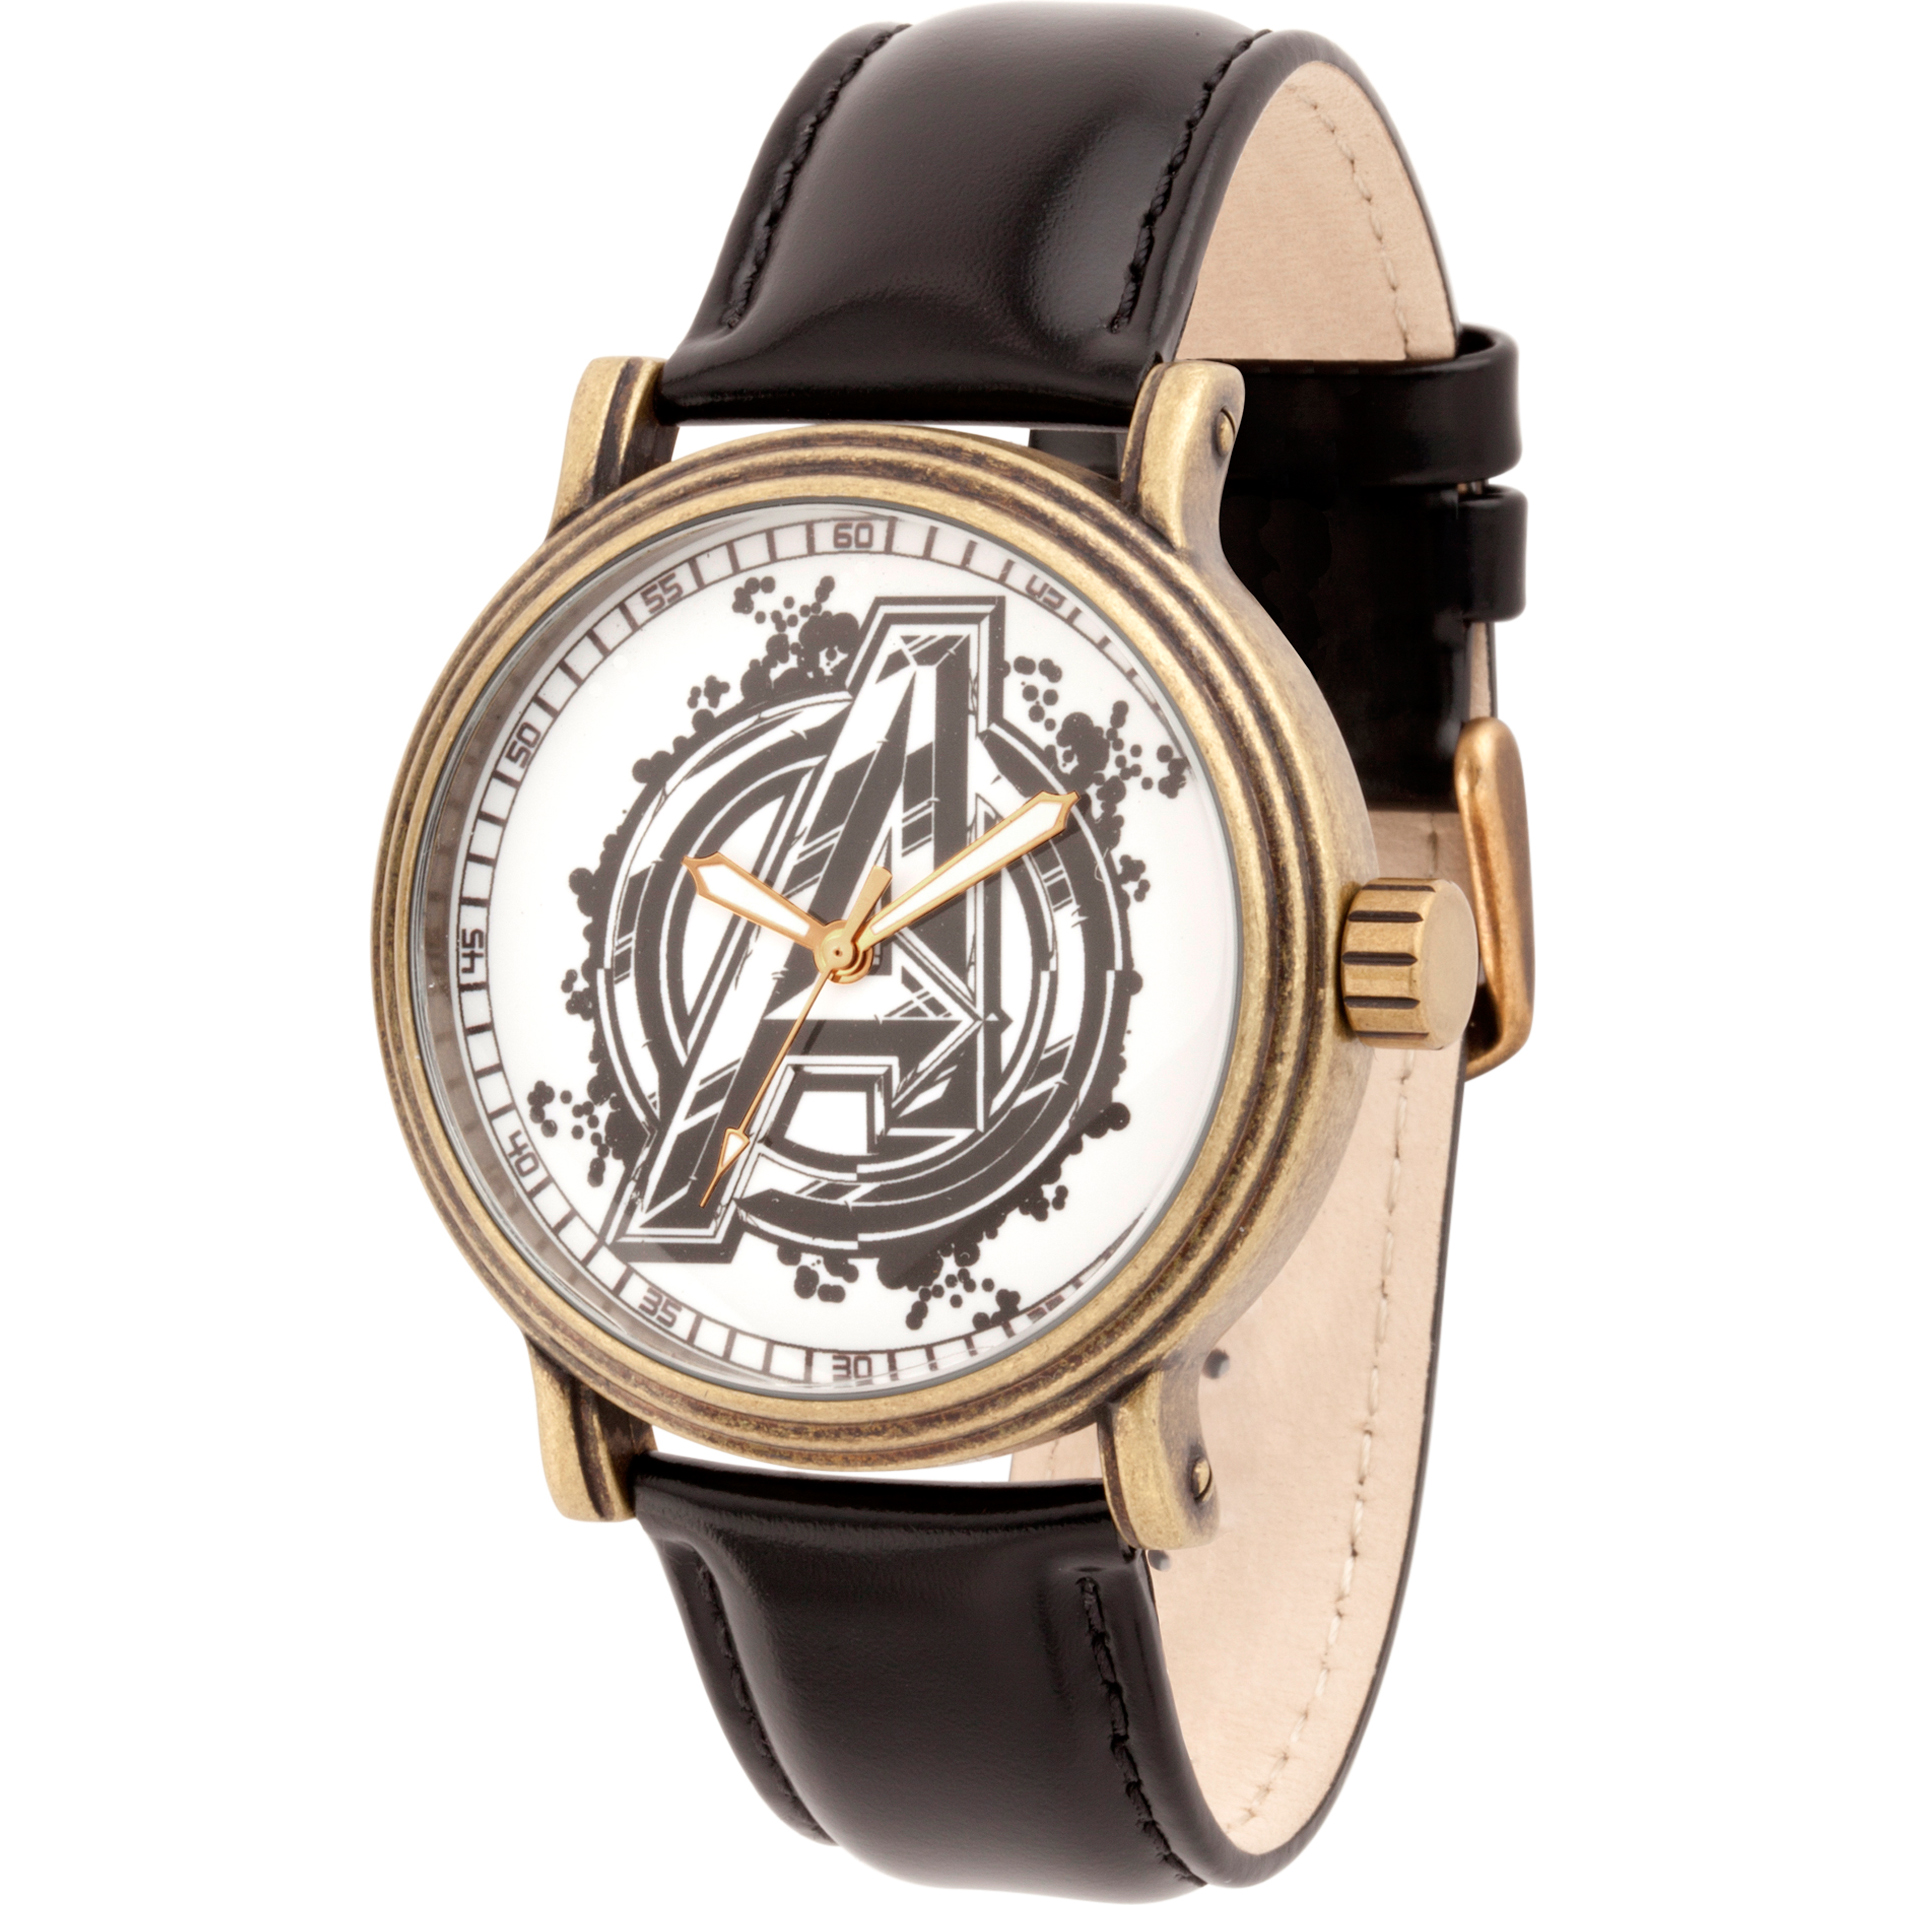 Avengers Infinity War-Avengers Men's Antique Gold Alloy Vintage Watch, Black Leather Strap